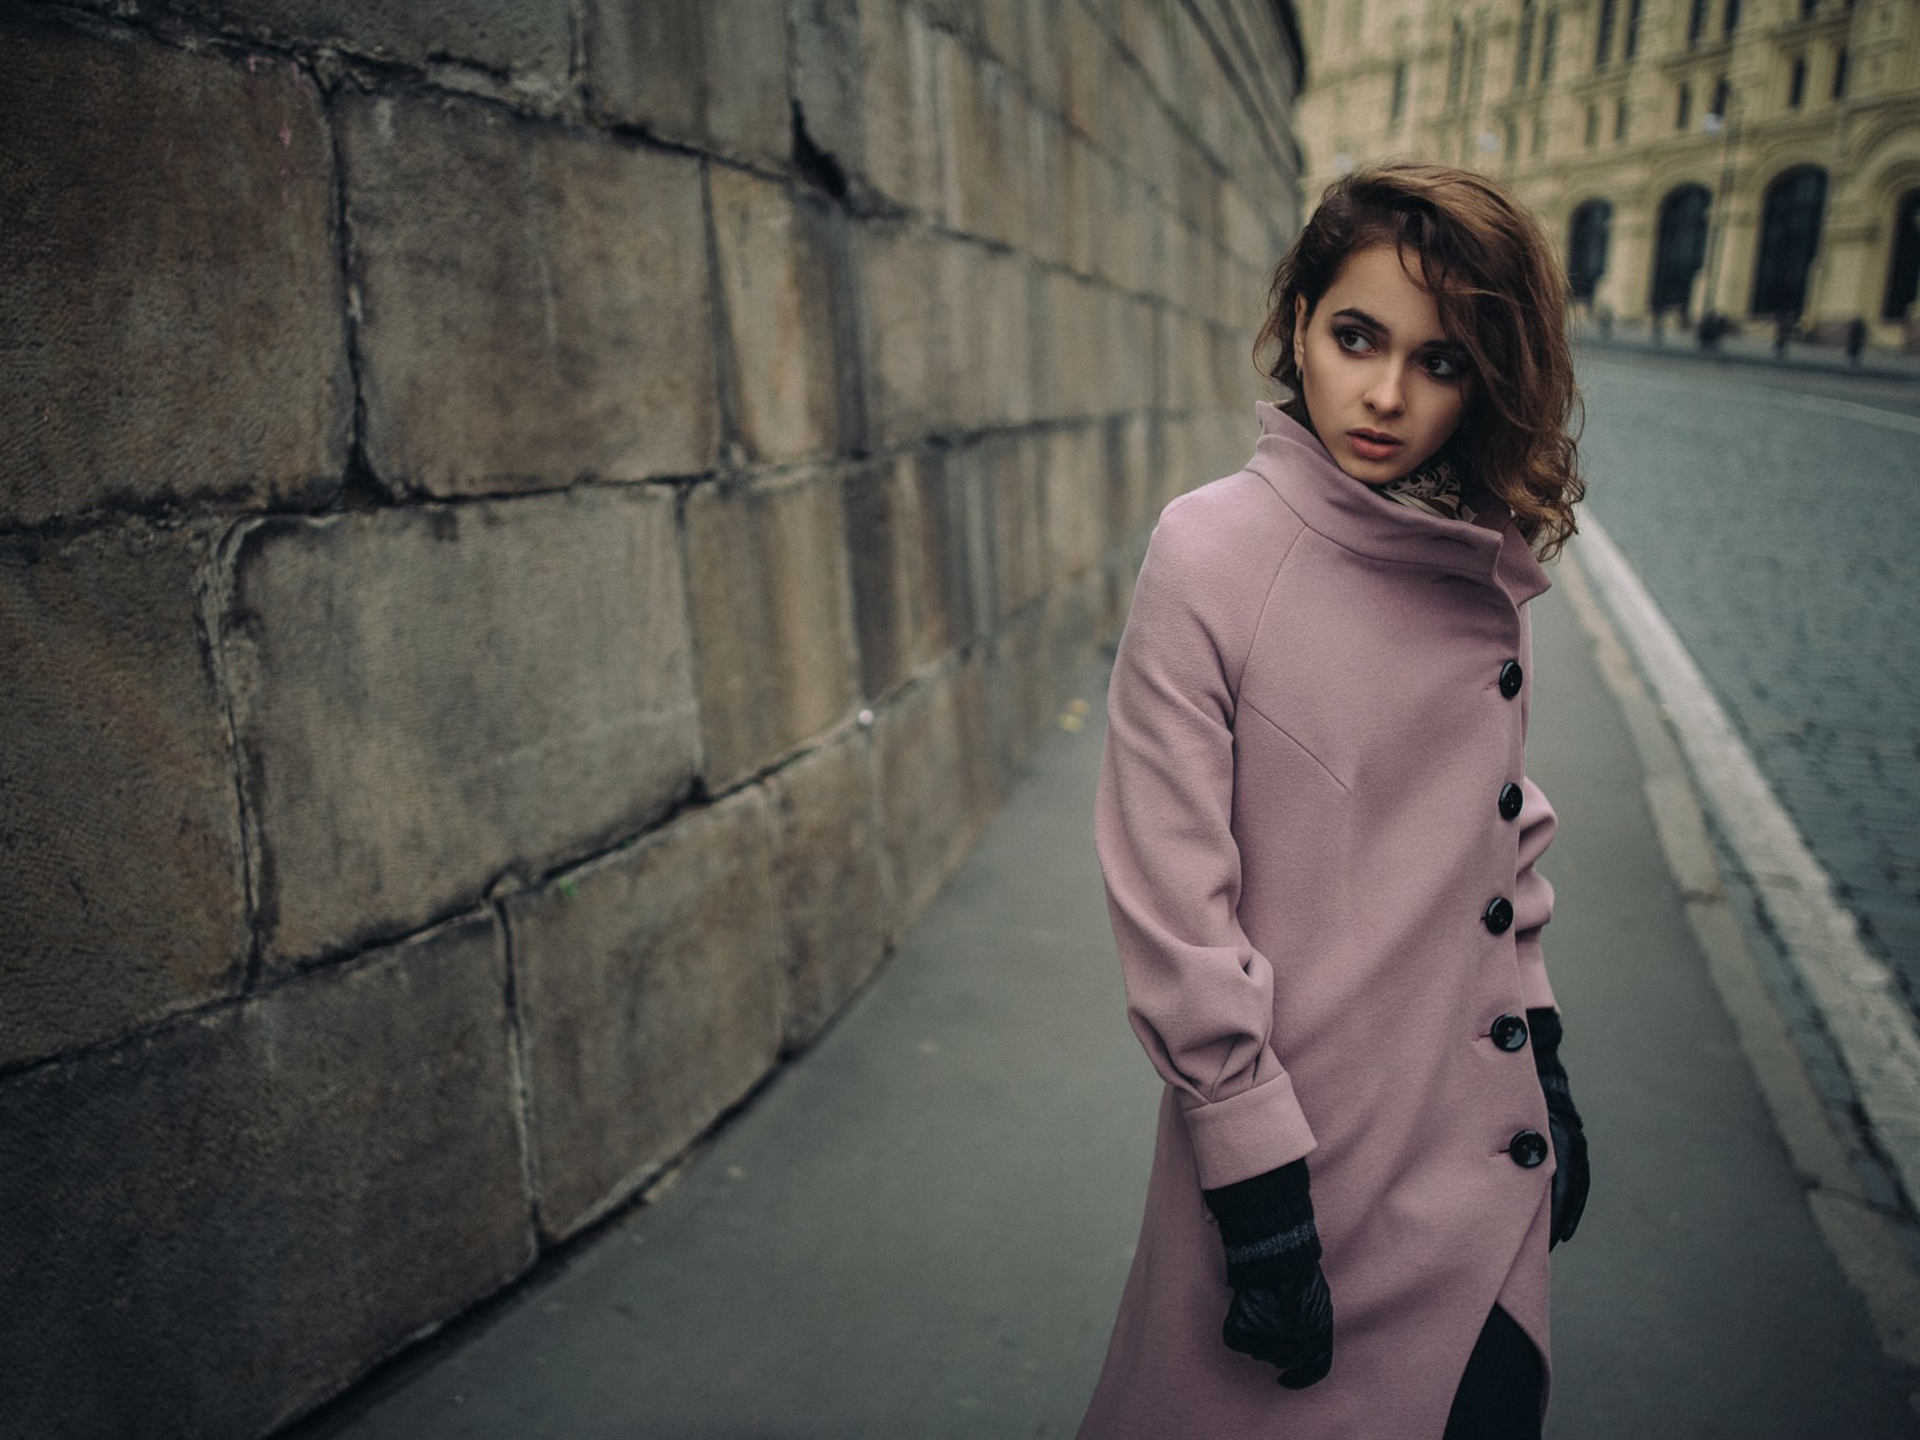 Pink clothing girl, city, street 1920x1440 wallpaper